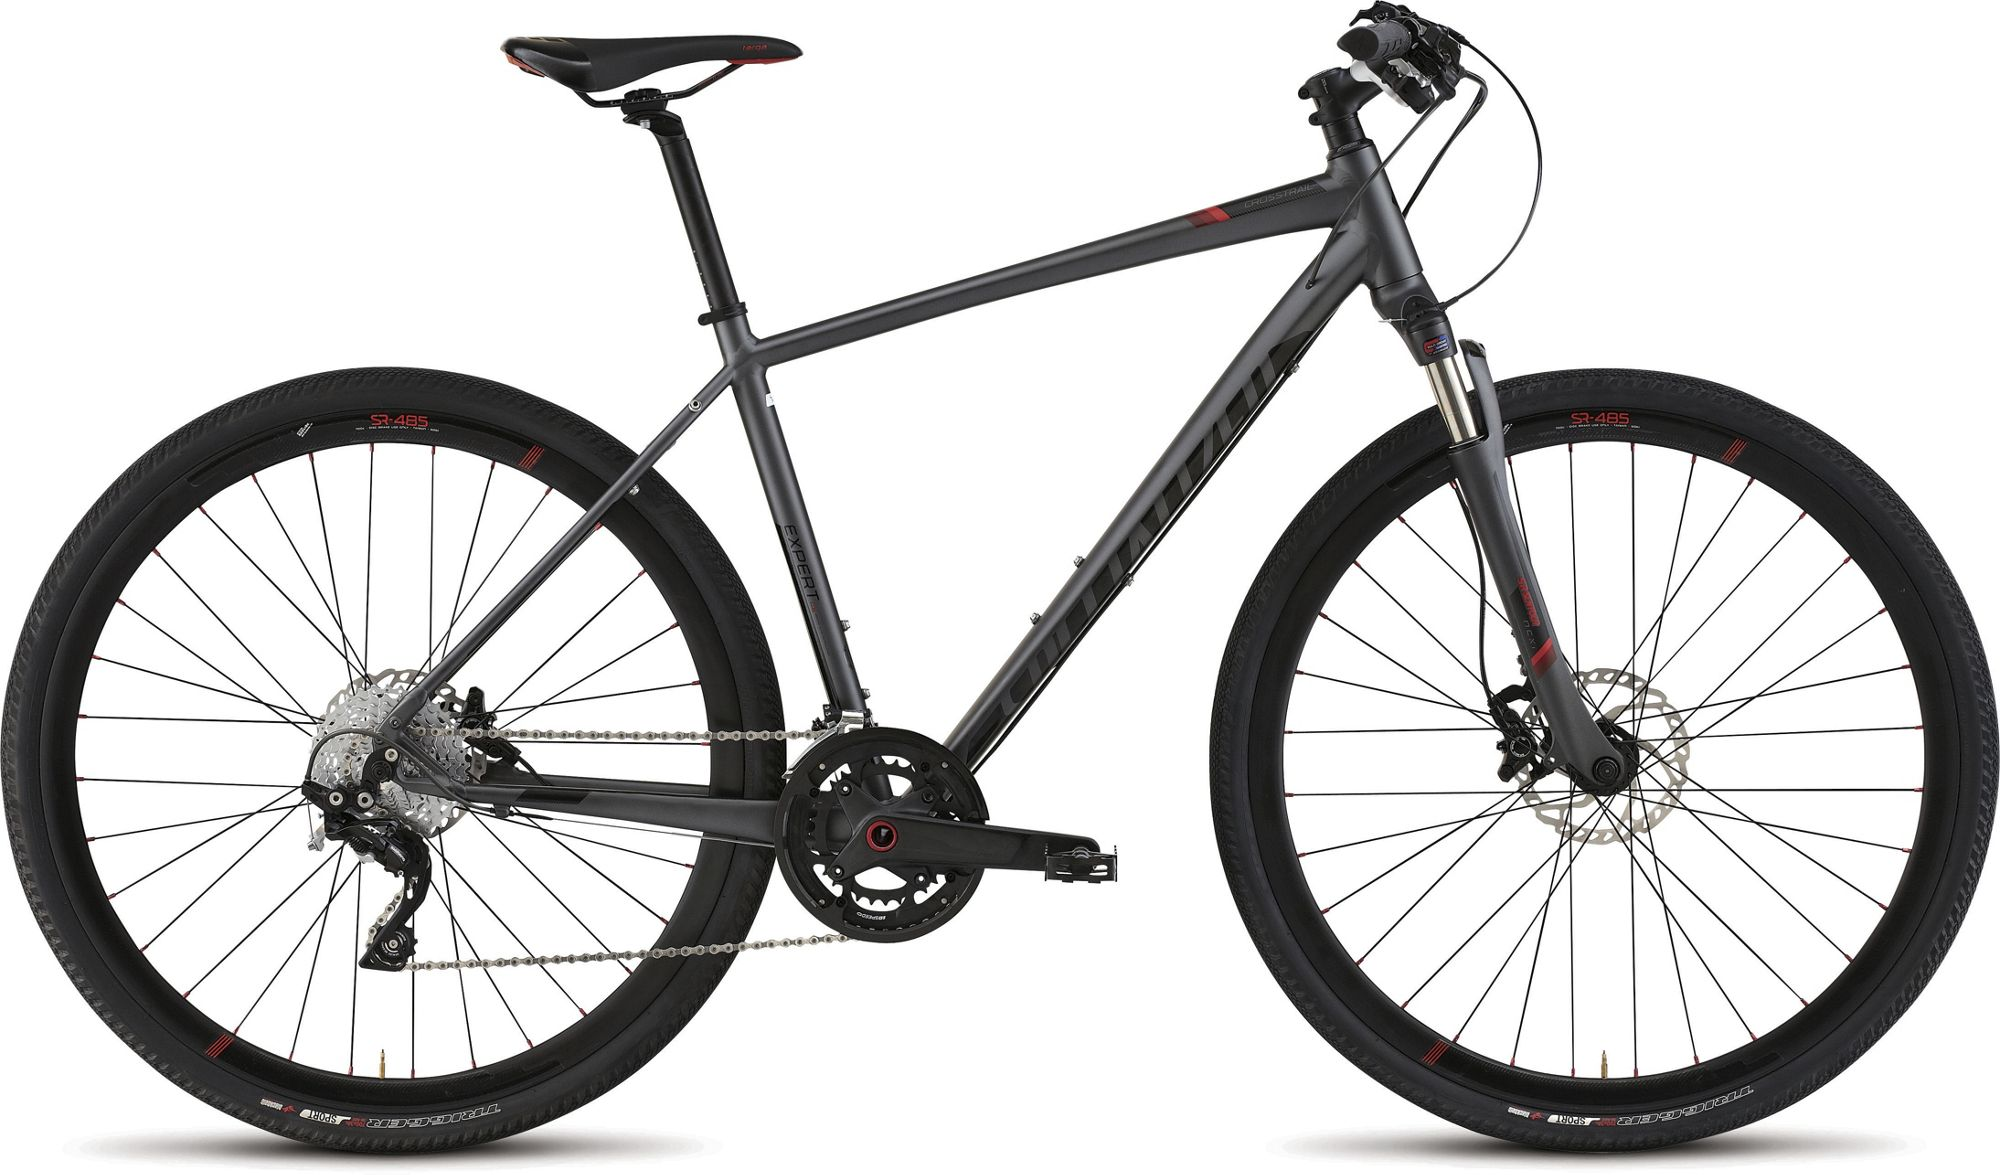 Specialized Crosstrail Expert Disc 2015 Review The Bike List